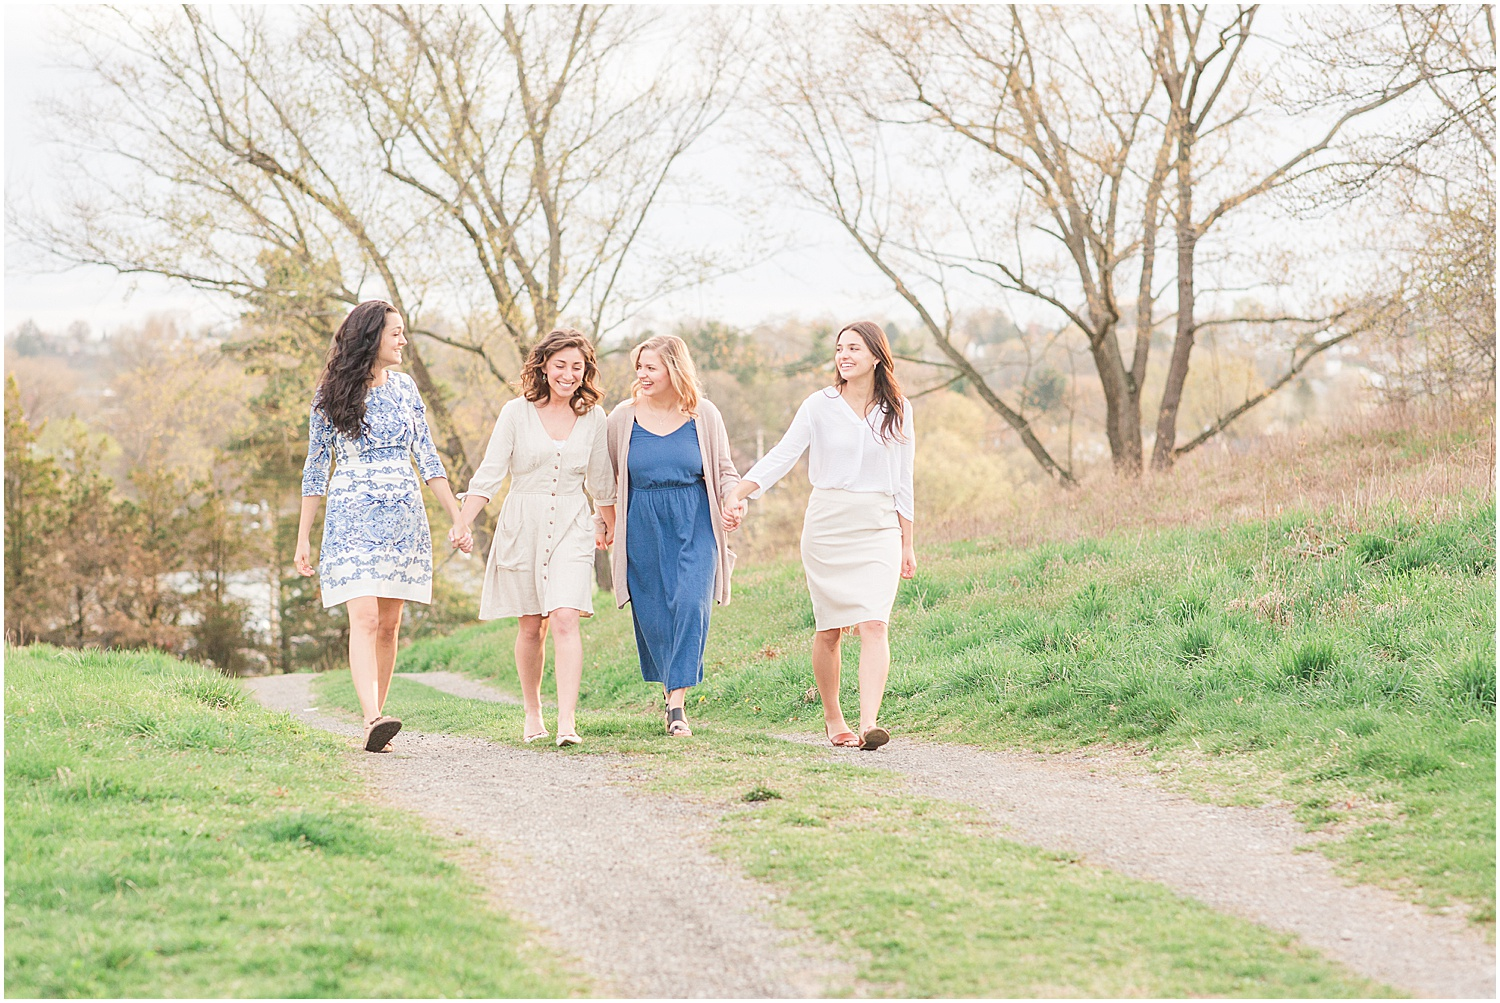 Steubenville Ohio Spring Senior Session Photos_0789.jpg